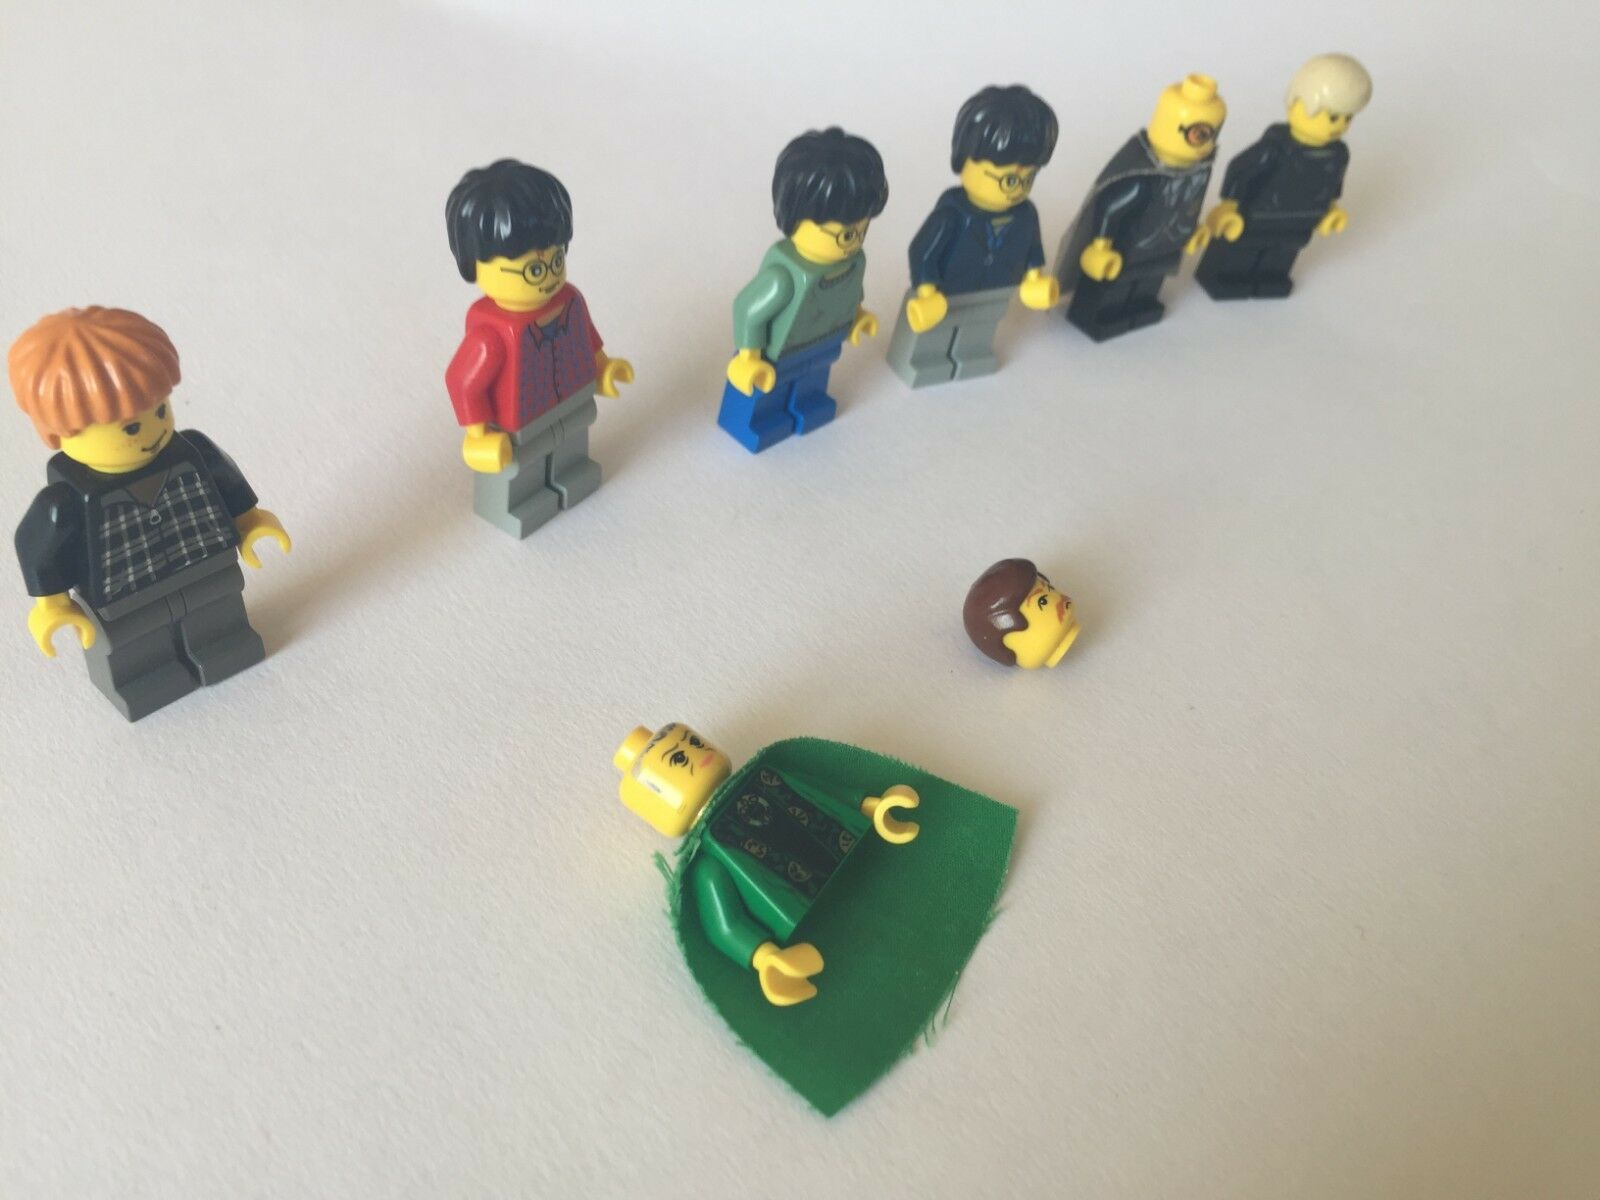 Lego - 6 x Harry Harry Harry Potter minifigures + more - Chamber of Secrets - 4730 etc cac9fc